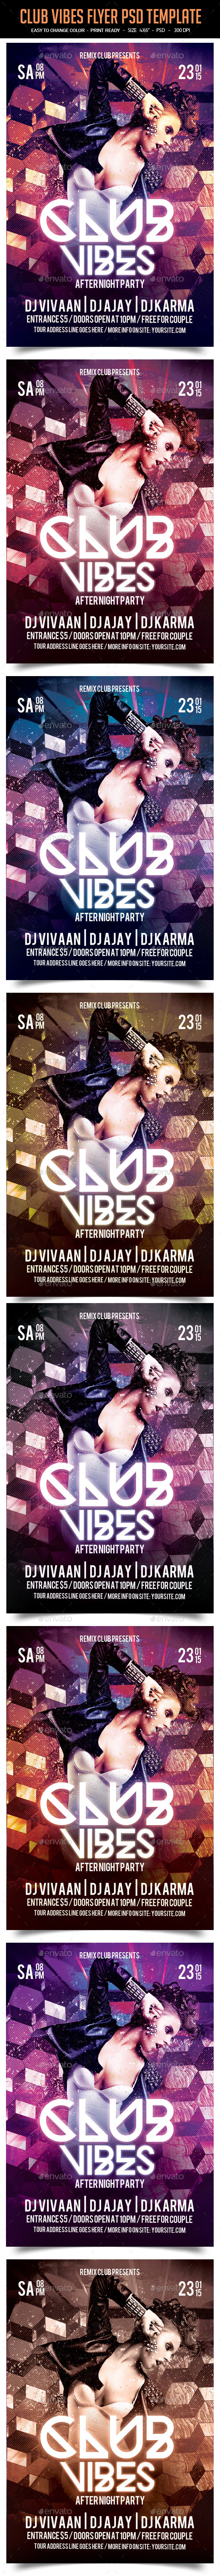 Club Vibes Flyer PSD Template - Clubs & Parties Events